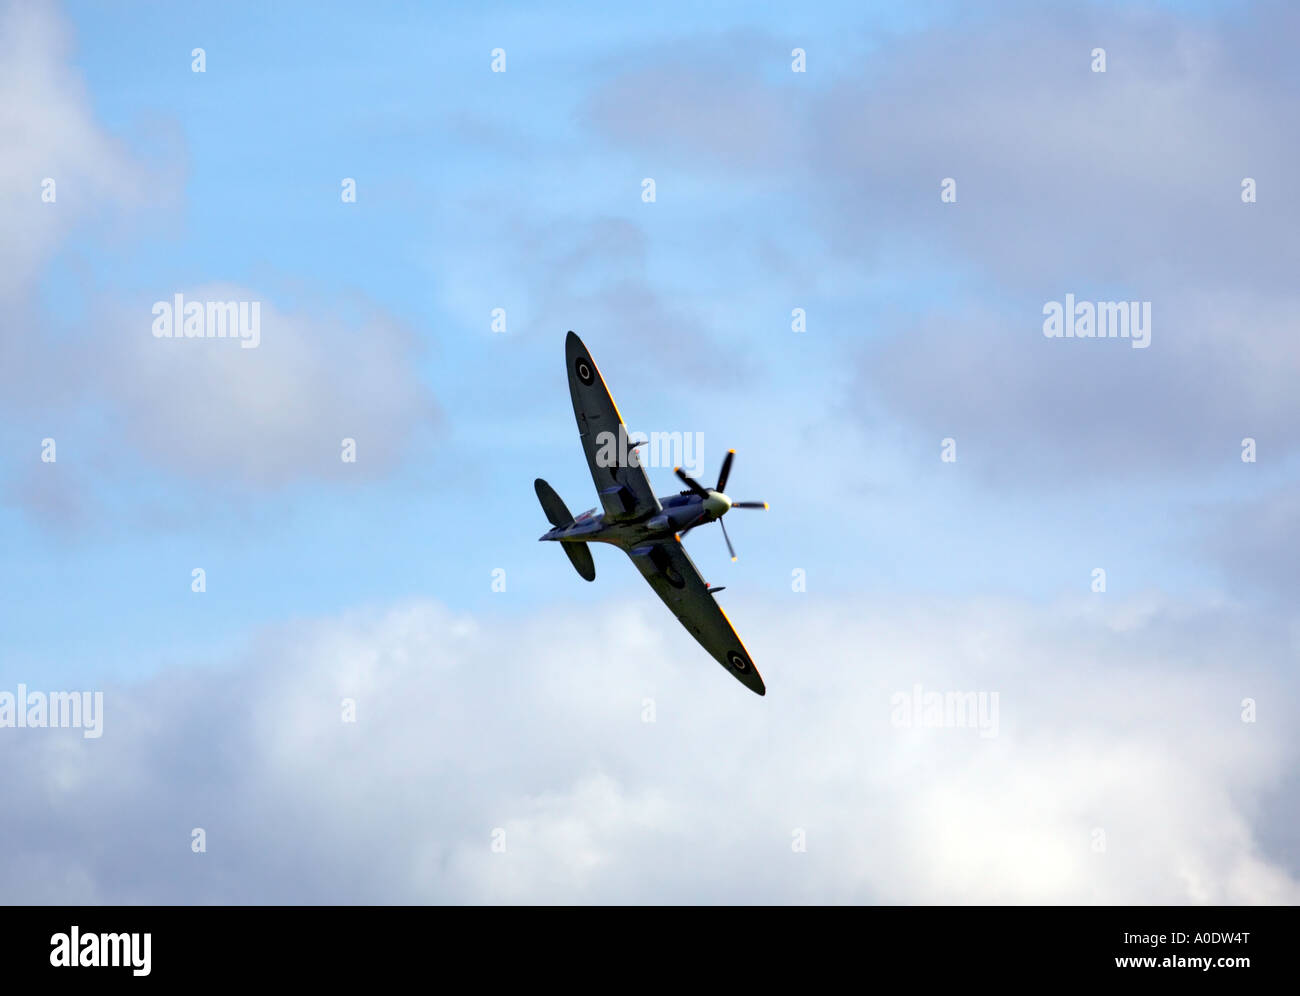 Spitfire at airshow Duxford - Stock Image